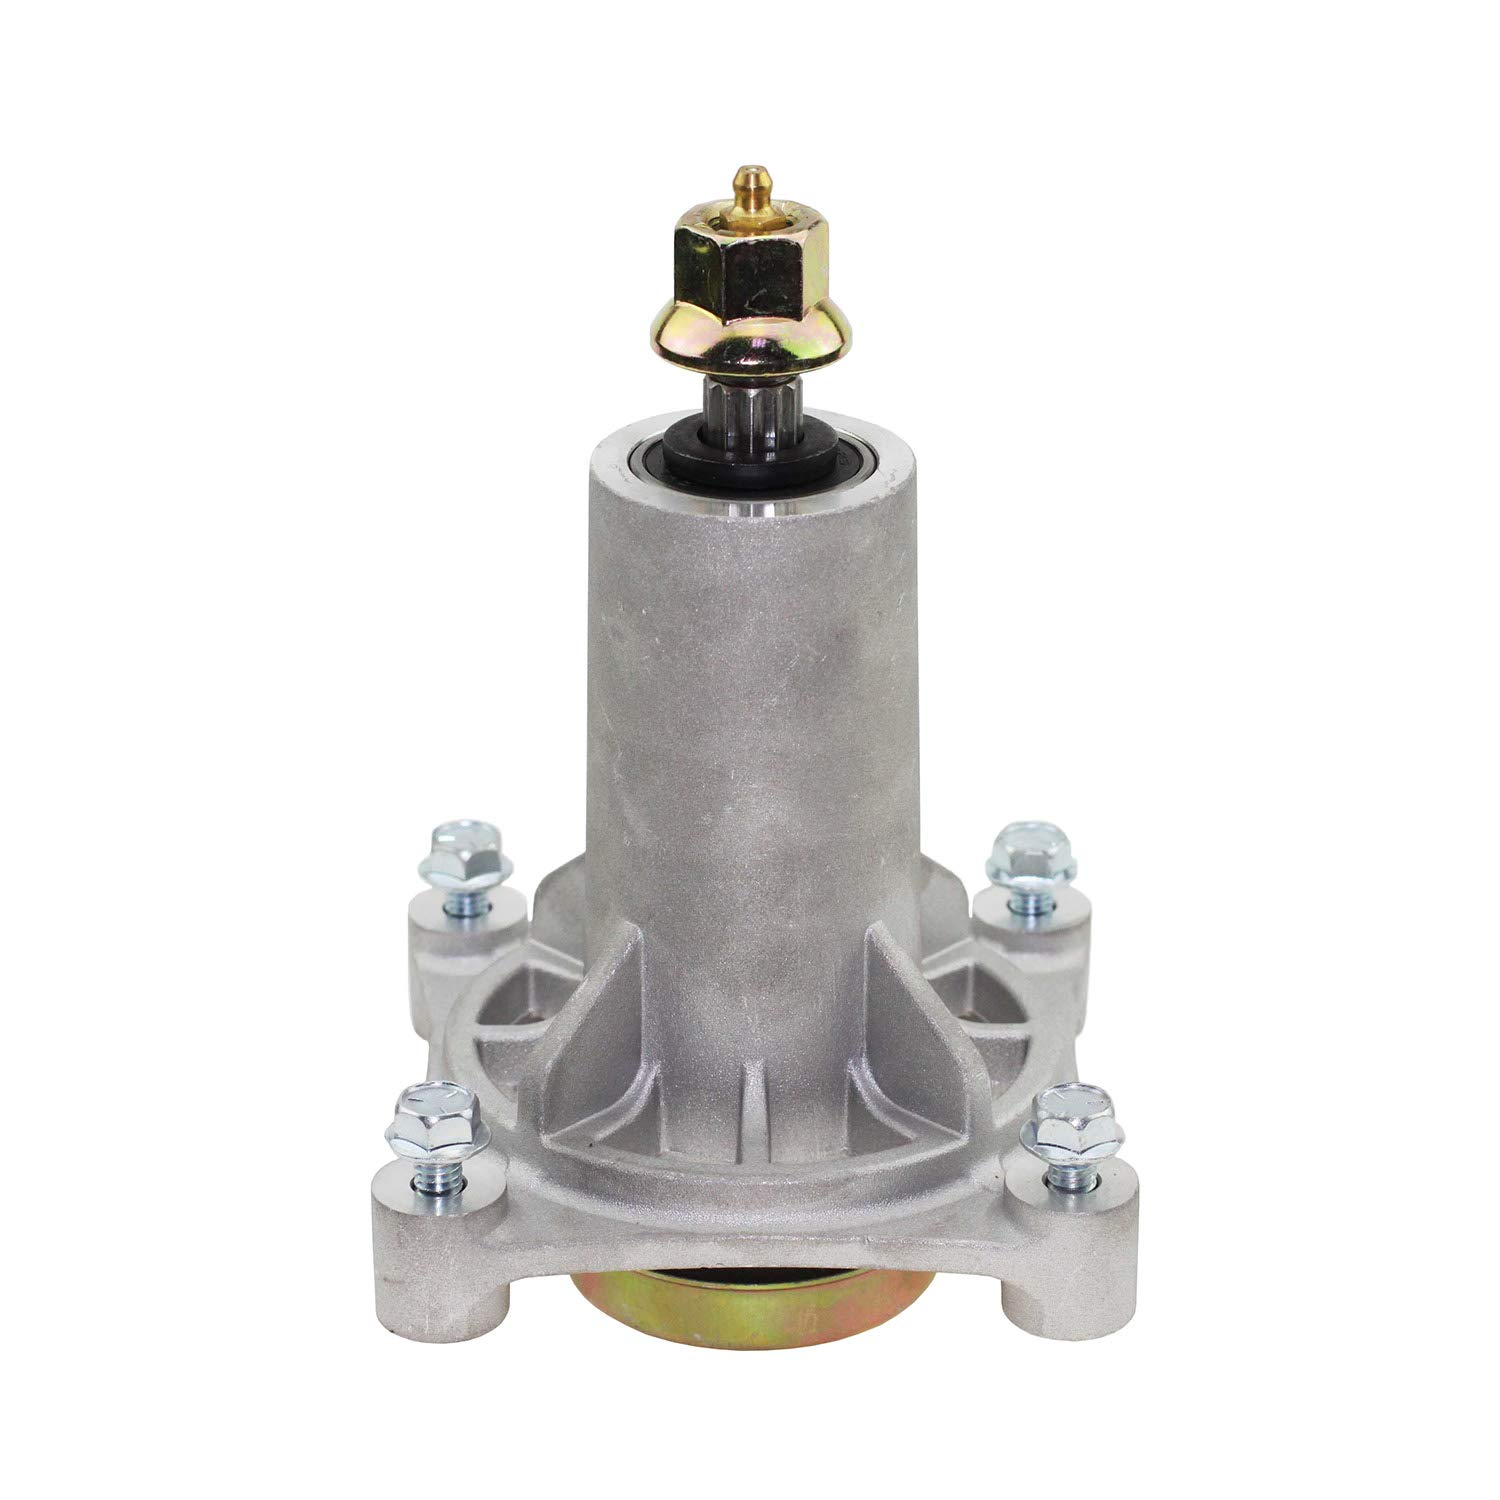 Parts Camp Replaces Ariens 21546238 / 21546299;AYP 187292 / 192870;Husqvarna 532 18 72-81 / 532 18 72-92 by Parts Camp